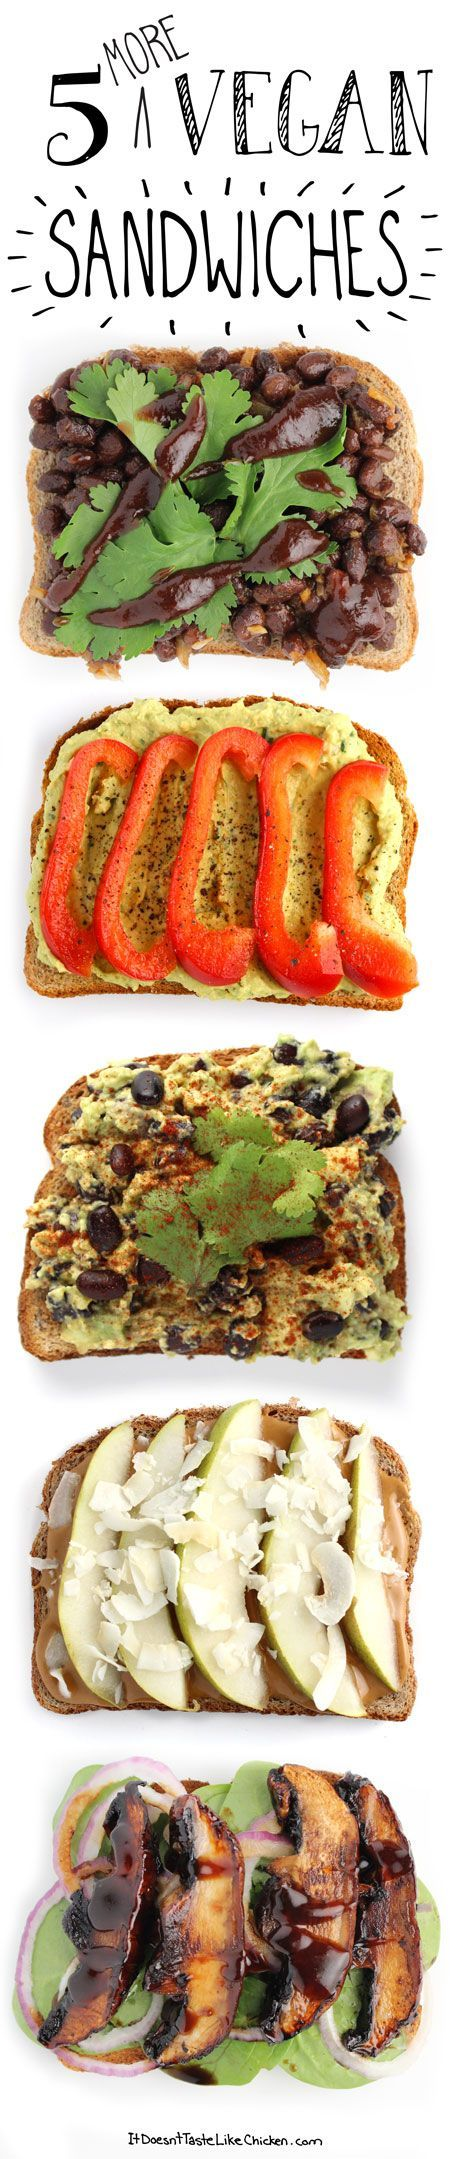 Sandwich Recipes: BBQ black bean, cilantro hummus & peppers, Mexican avocado, PB pear & coconut, Asian portobello